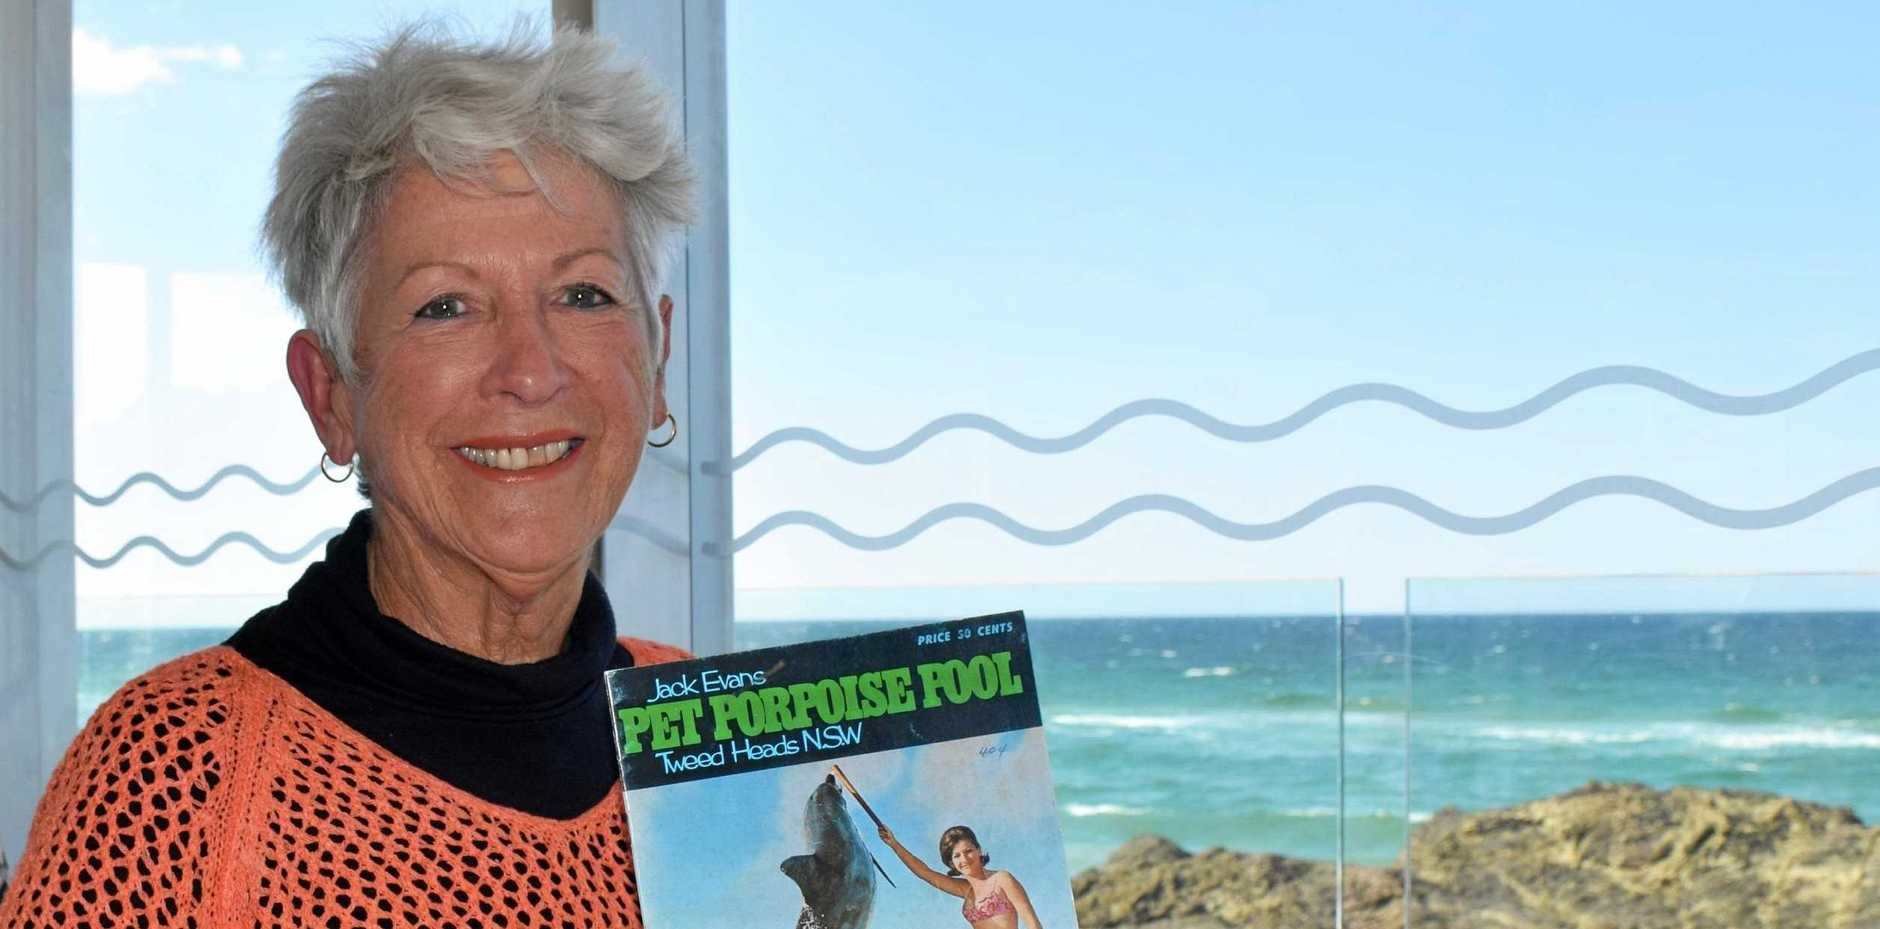 FAMILY LEGACY: Toni Cameron was the first female in Australia to work with dolphins and fondly remembers the heyday of her father Jack Evans' Pet Porpoise Pool, a tourism game-changer  in the 1960s and '70s.